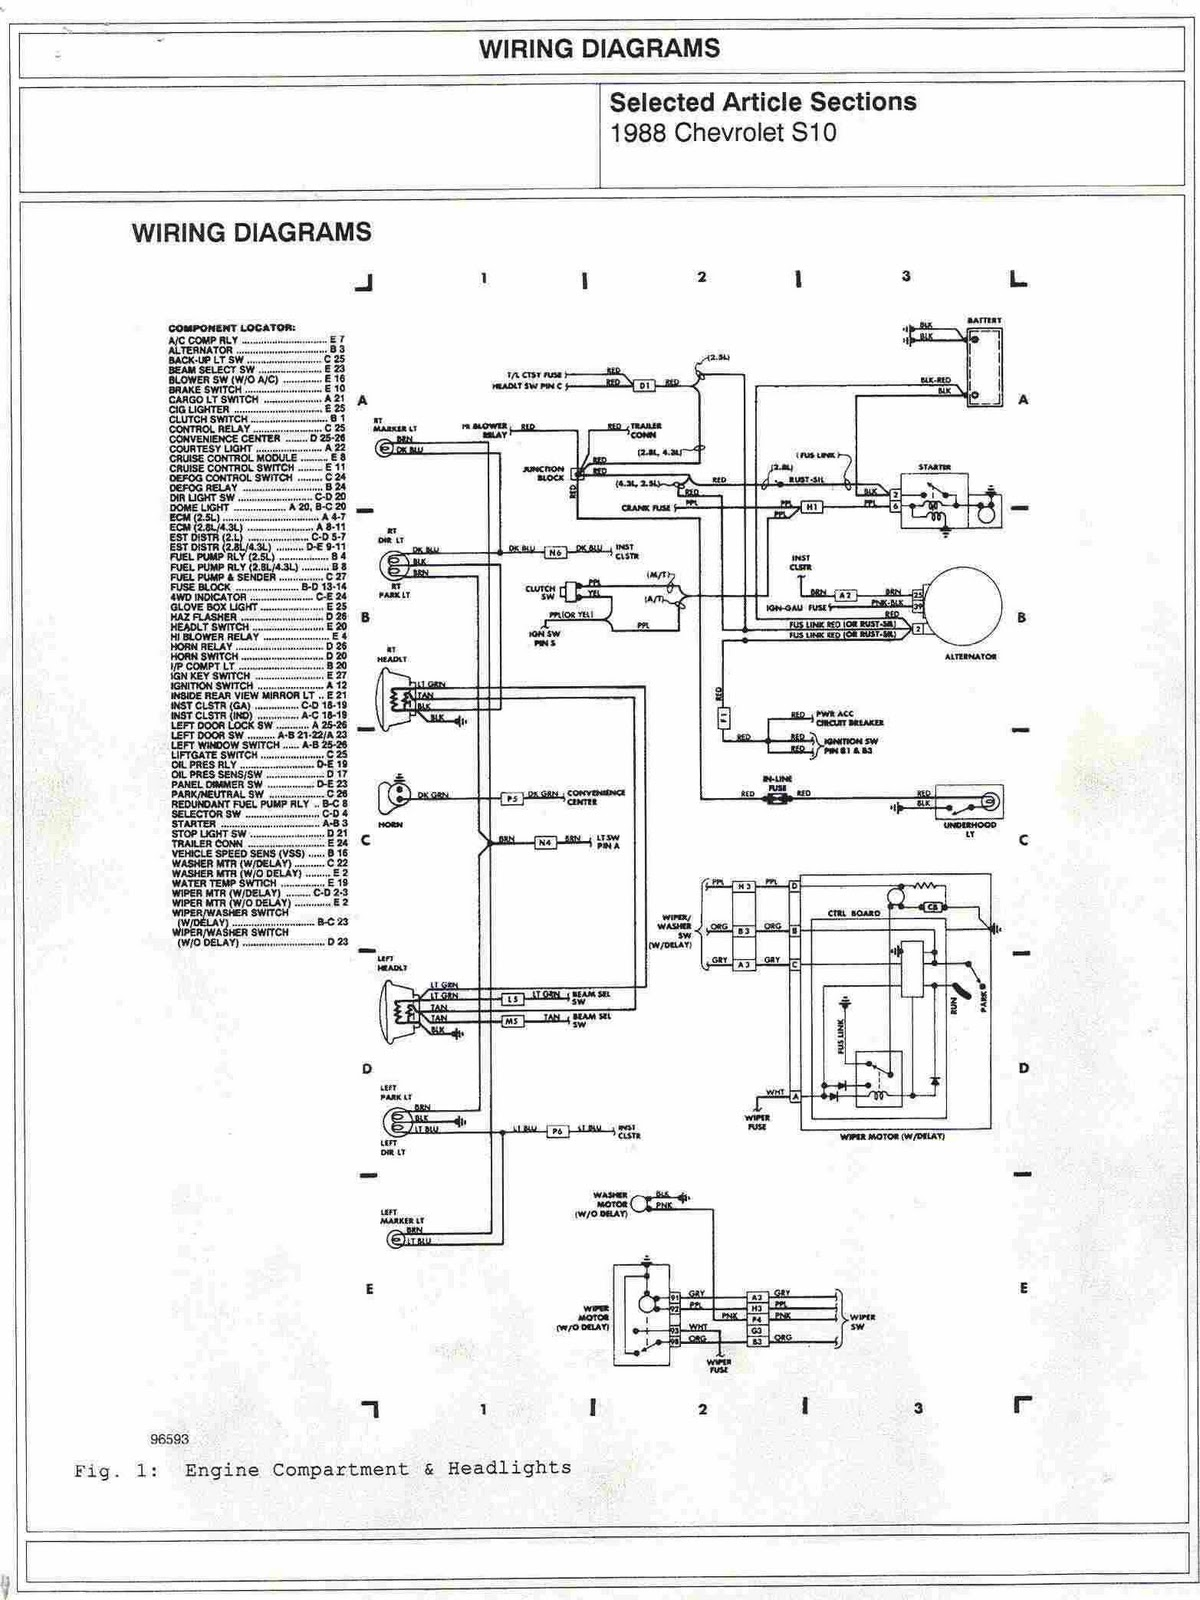 06 Gmc Turn Signal Wiring Diagram 33 Images Gm Diagrams 1993 Suburban 4x4 1988 Chevrolet S10 Engine Compartment And Headlights